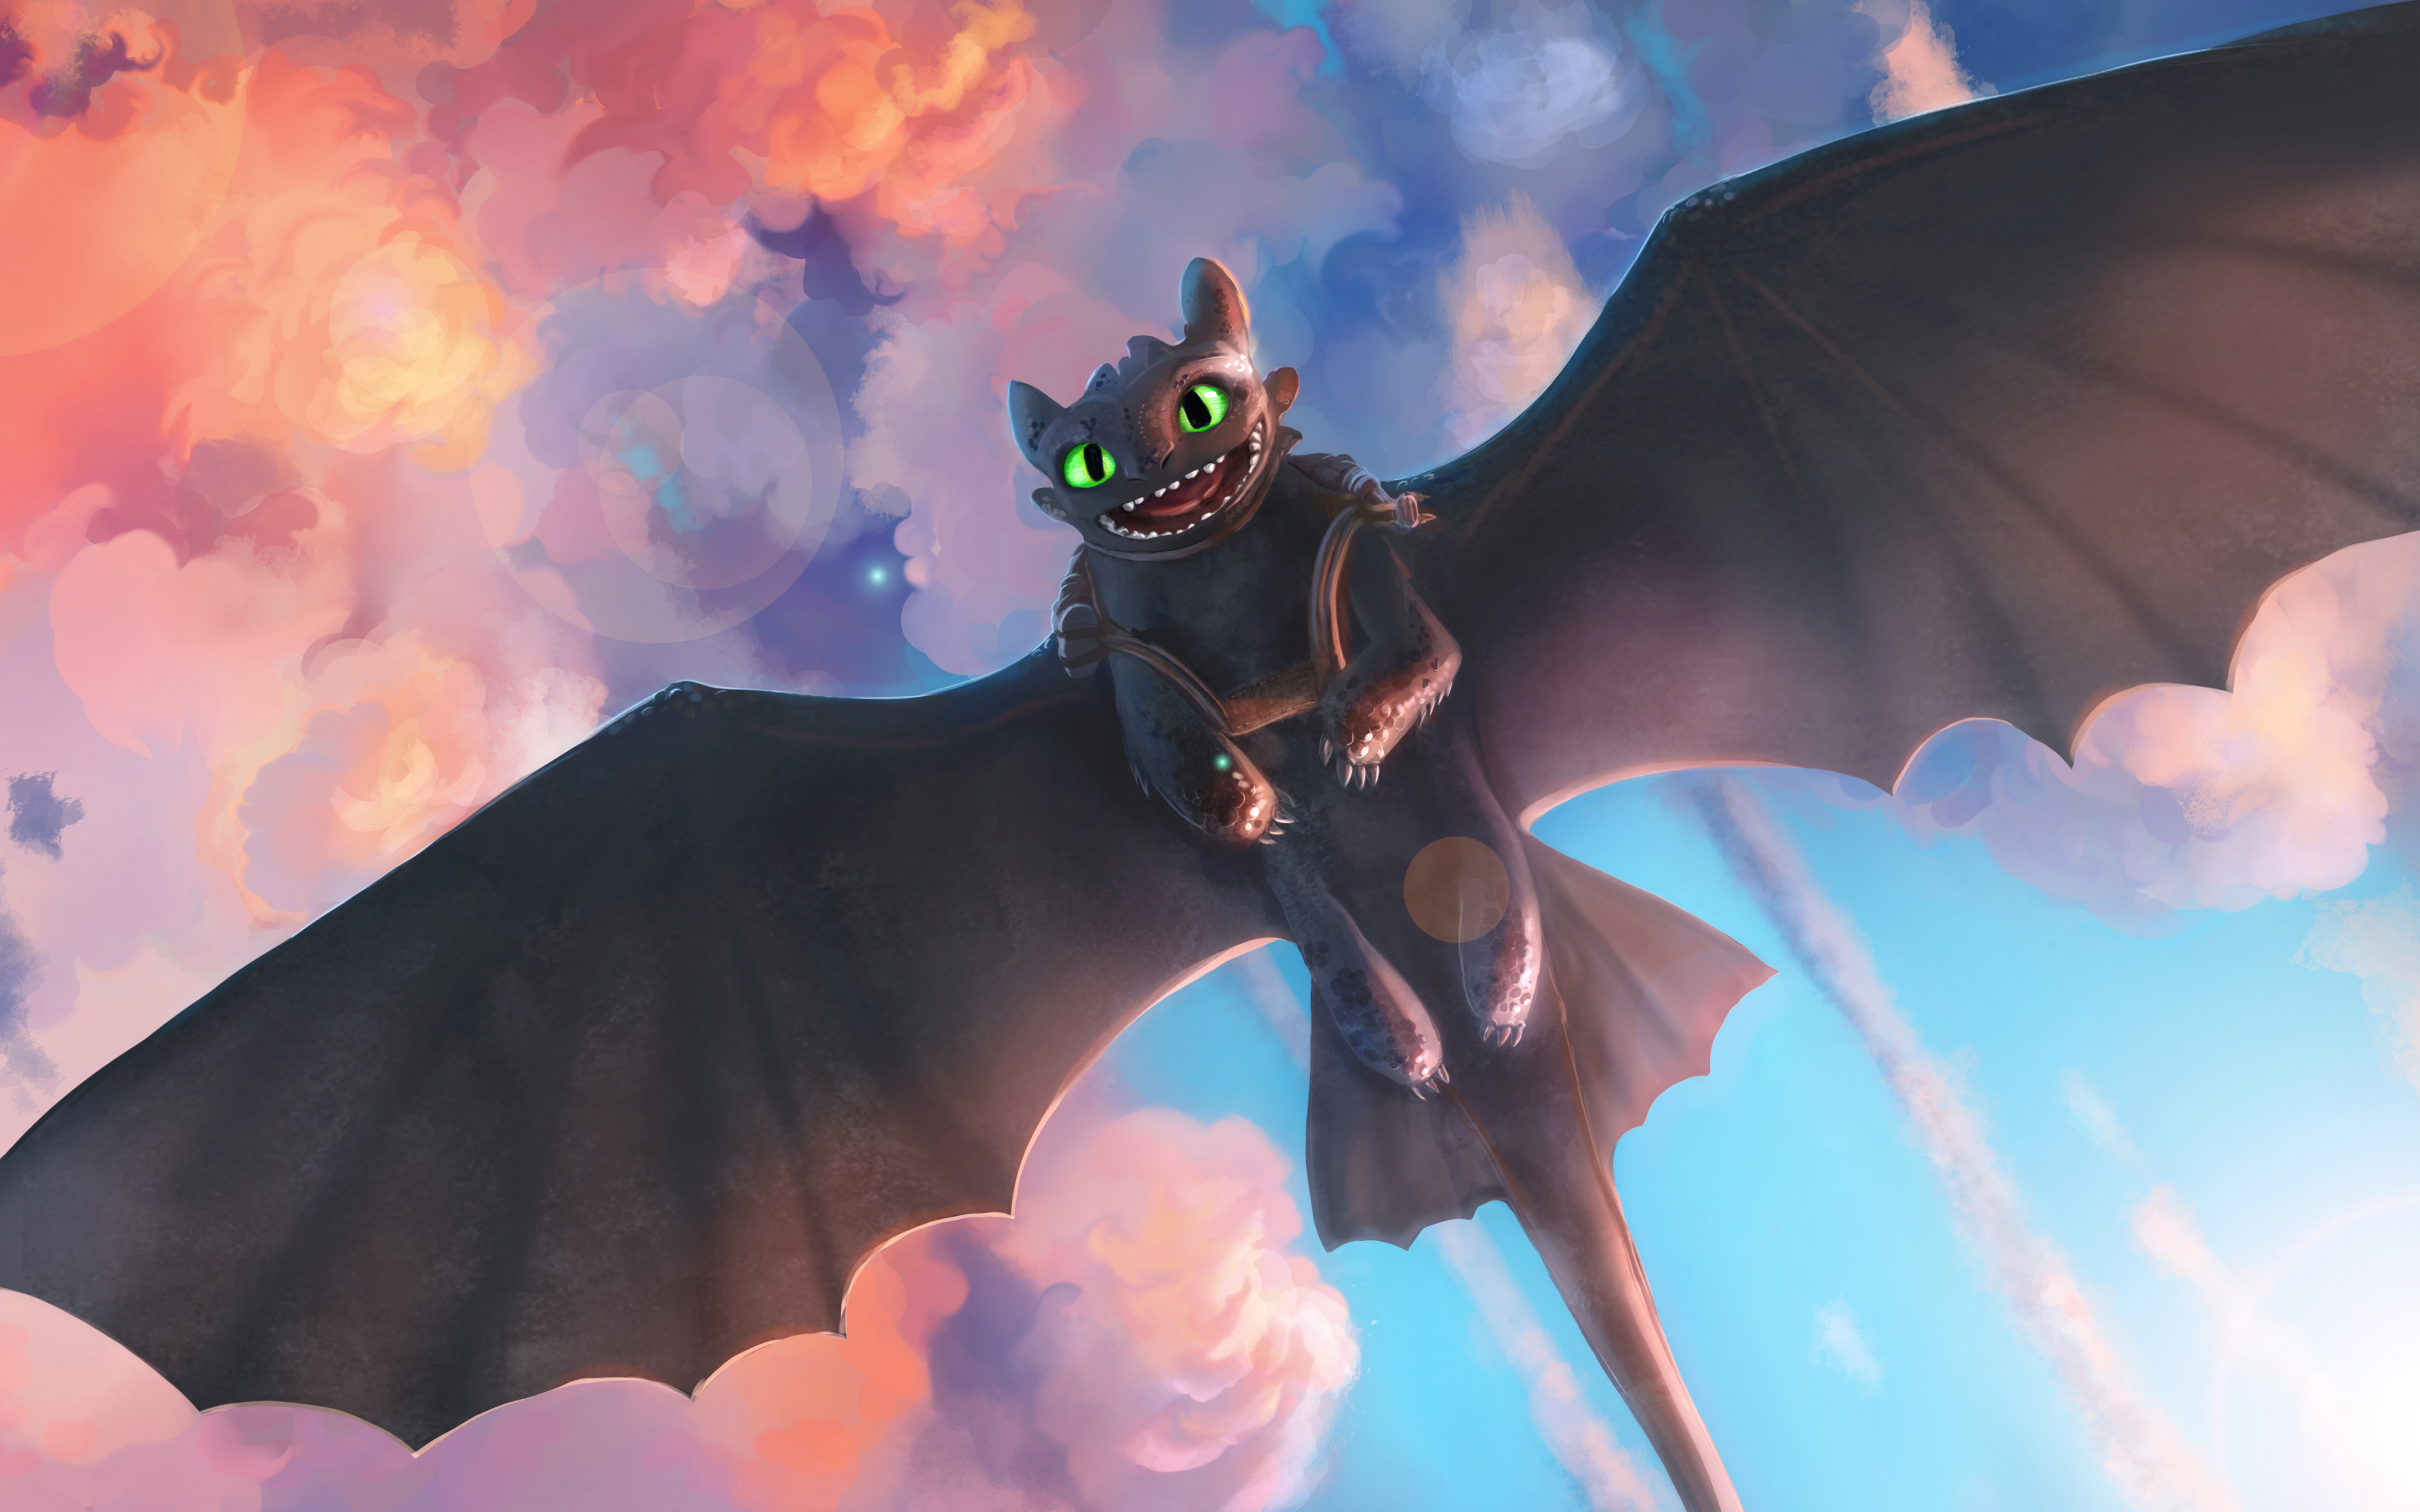 Download 3840x2400 Wallpaper Movie Toothless Night Fury Dragon How To Train Your Dragon 4k Ultra Hd 16 10 Widescreen 3840x2400 Hd Image Background 15177